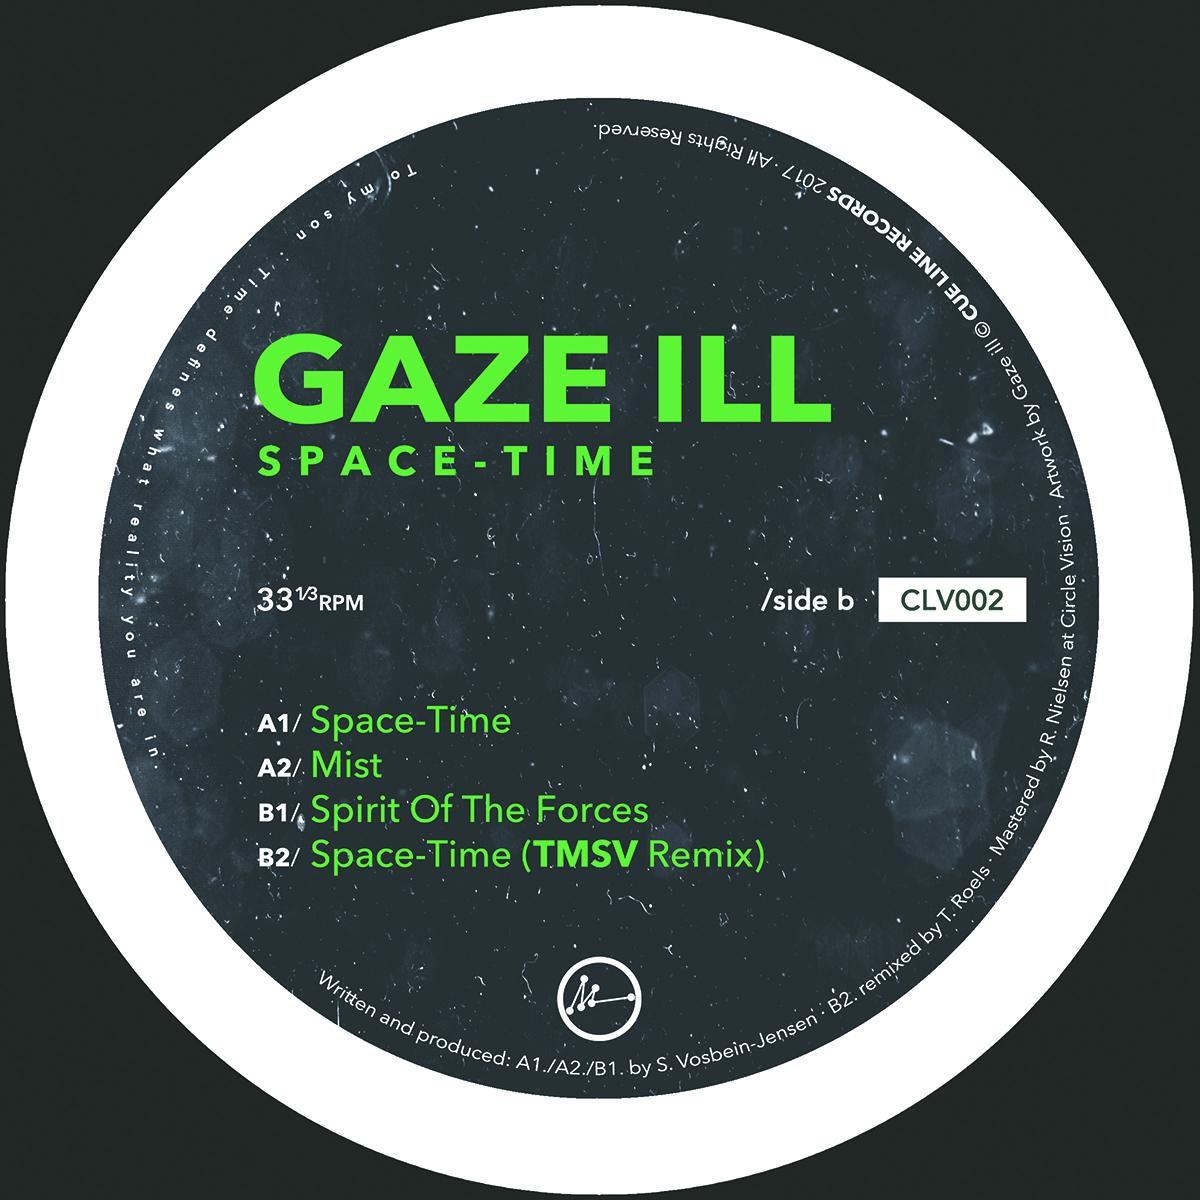 Gaze Ill - Space-Time (Incl. TMSV Remix)